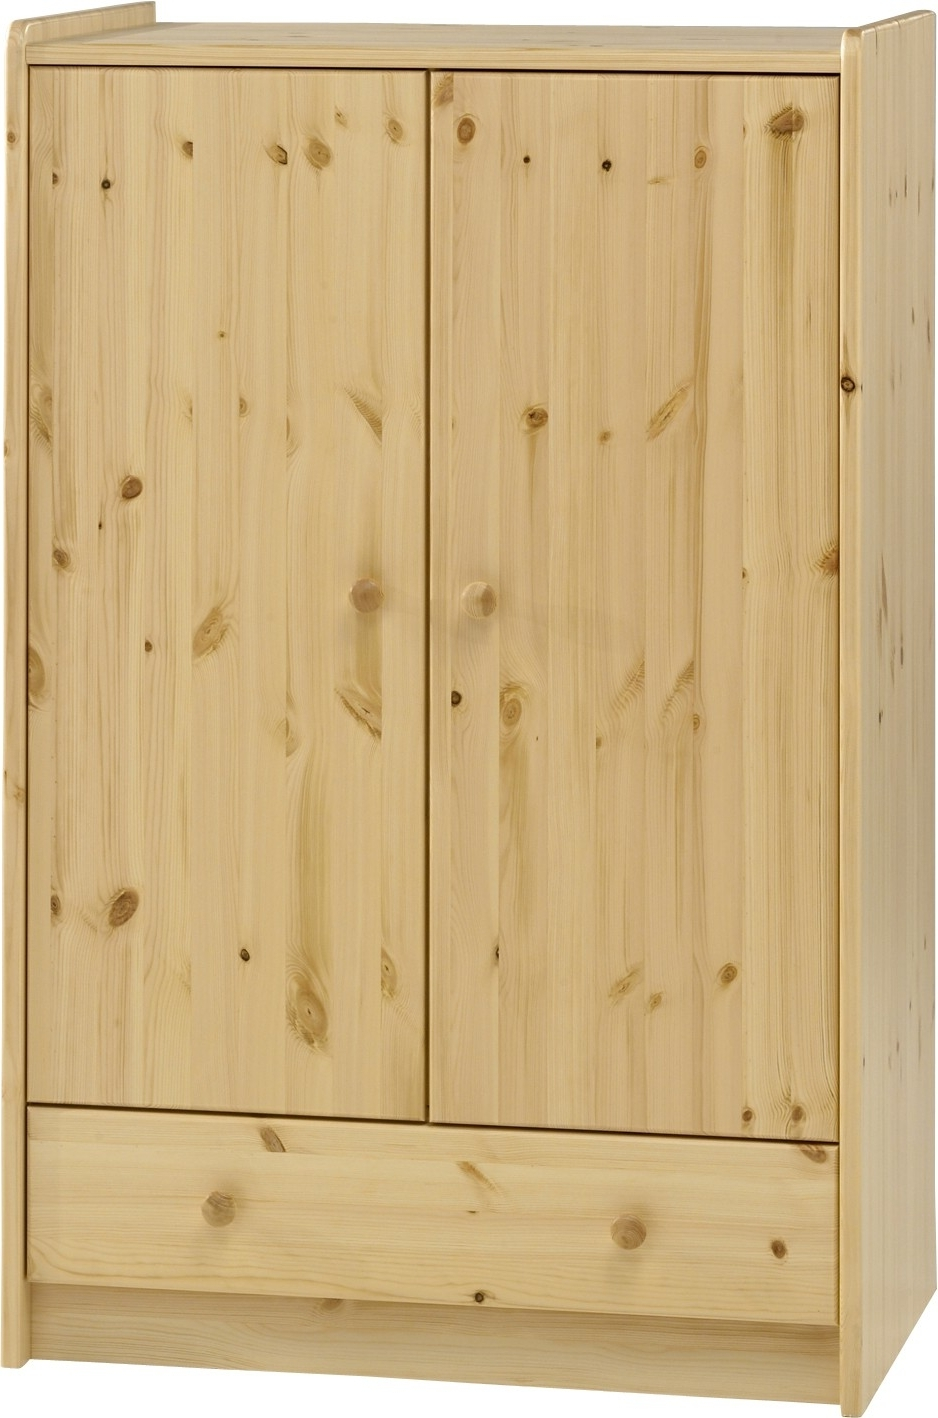 2018 Kids Pine Wardrobes Throughout Steens For Kids Pine Low Wardrobe (View 2 of 15)